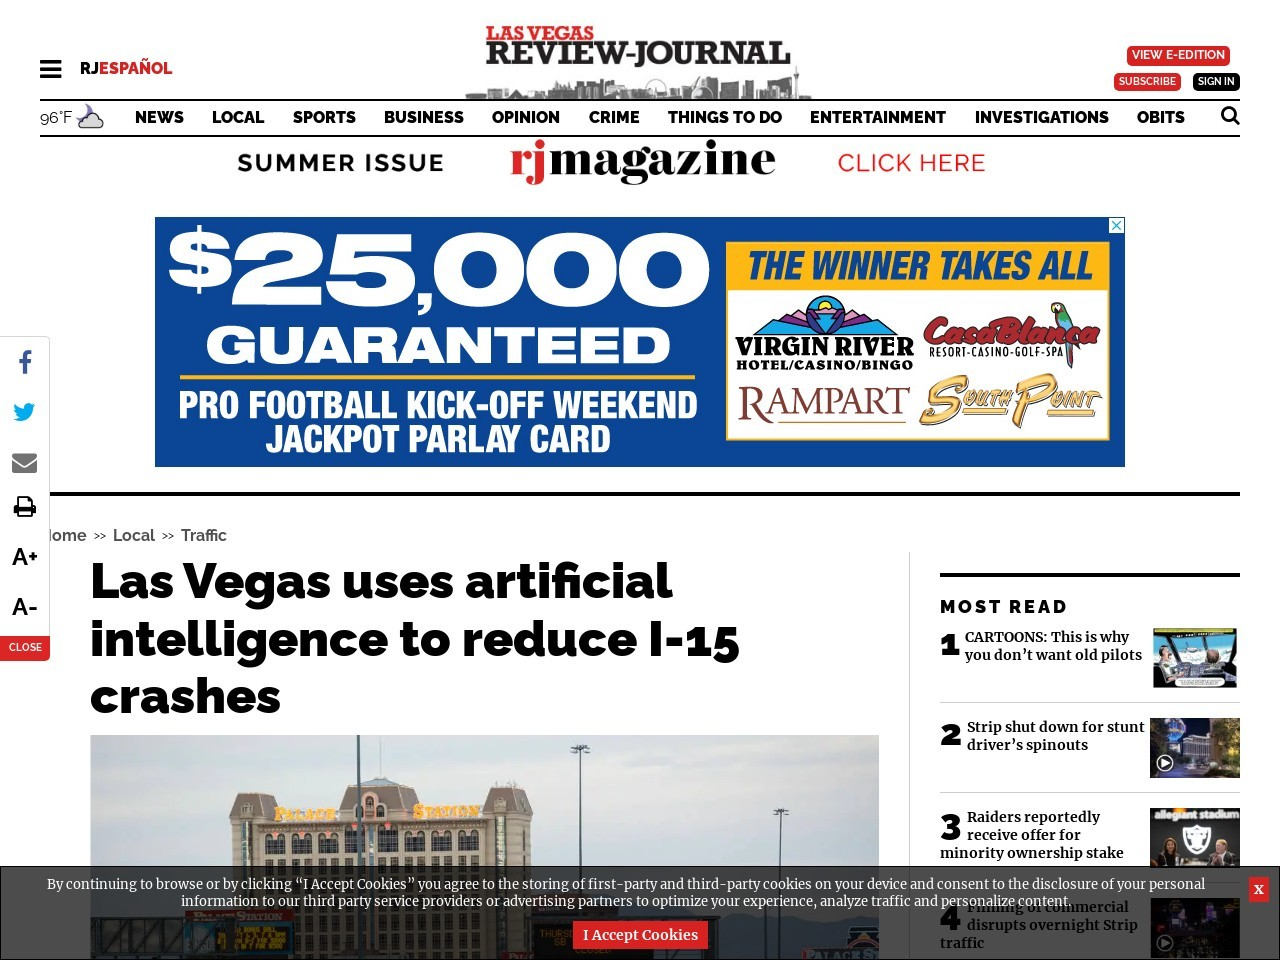 Las Vegas uses artificial intelligence to reduce interstate crashes